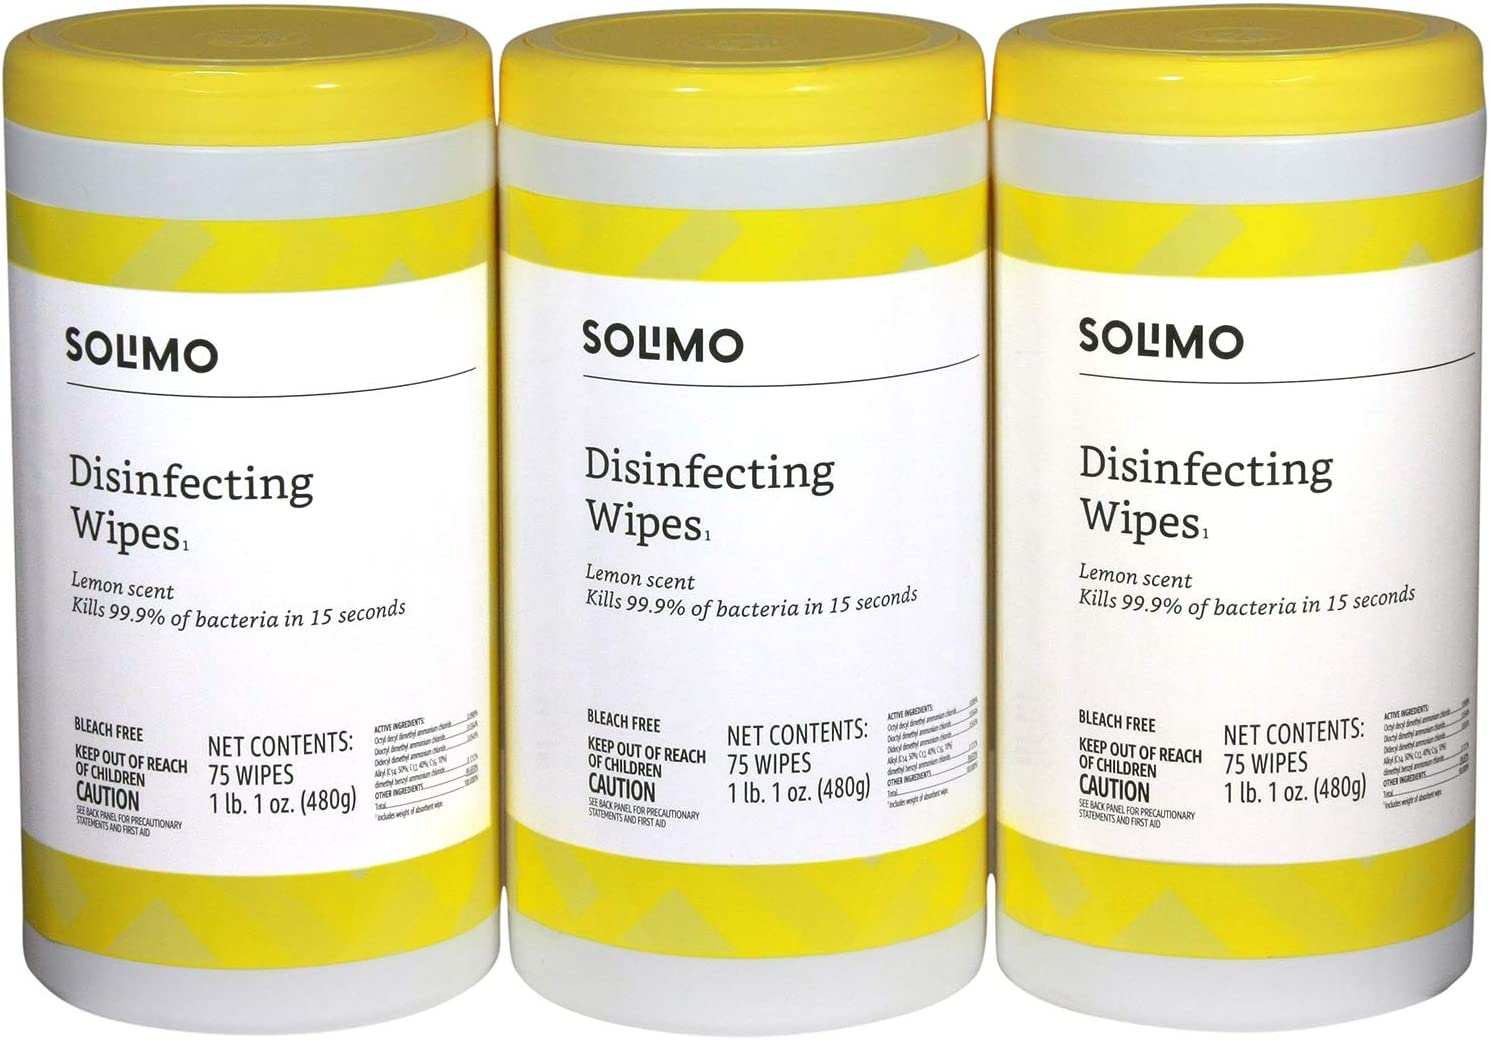 Amazon Brand - Solimo Disinfecting Wipes, Lemon Scent, Sanitizes/Cleans/Disinfects/Deodorizes, 75 Count (Pack of 3)